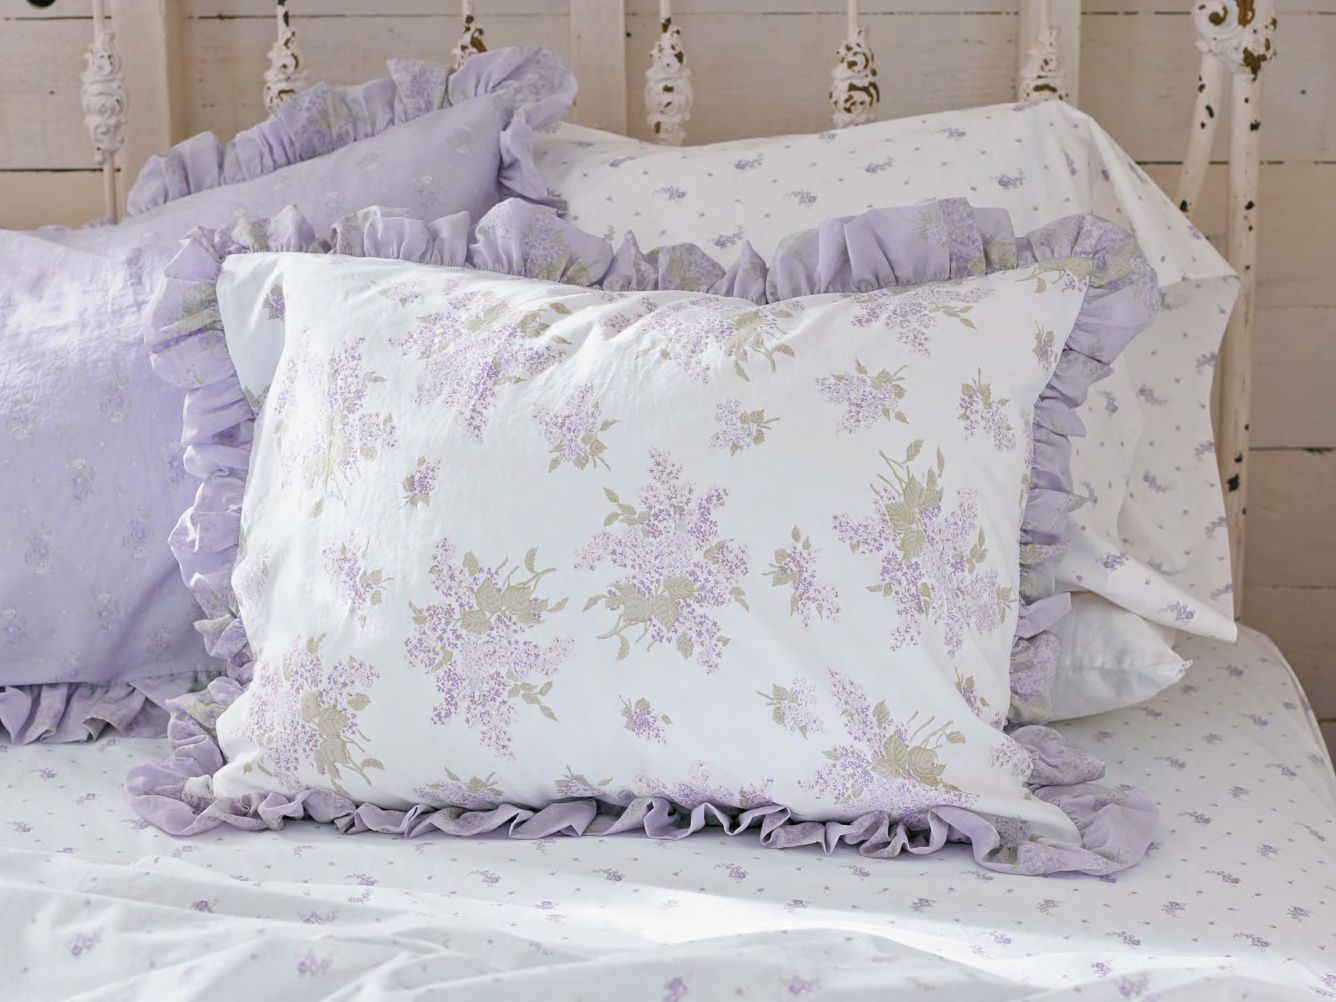 Simply Shabby Chic® Lilacs Duvet available at Target